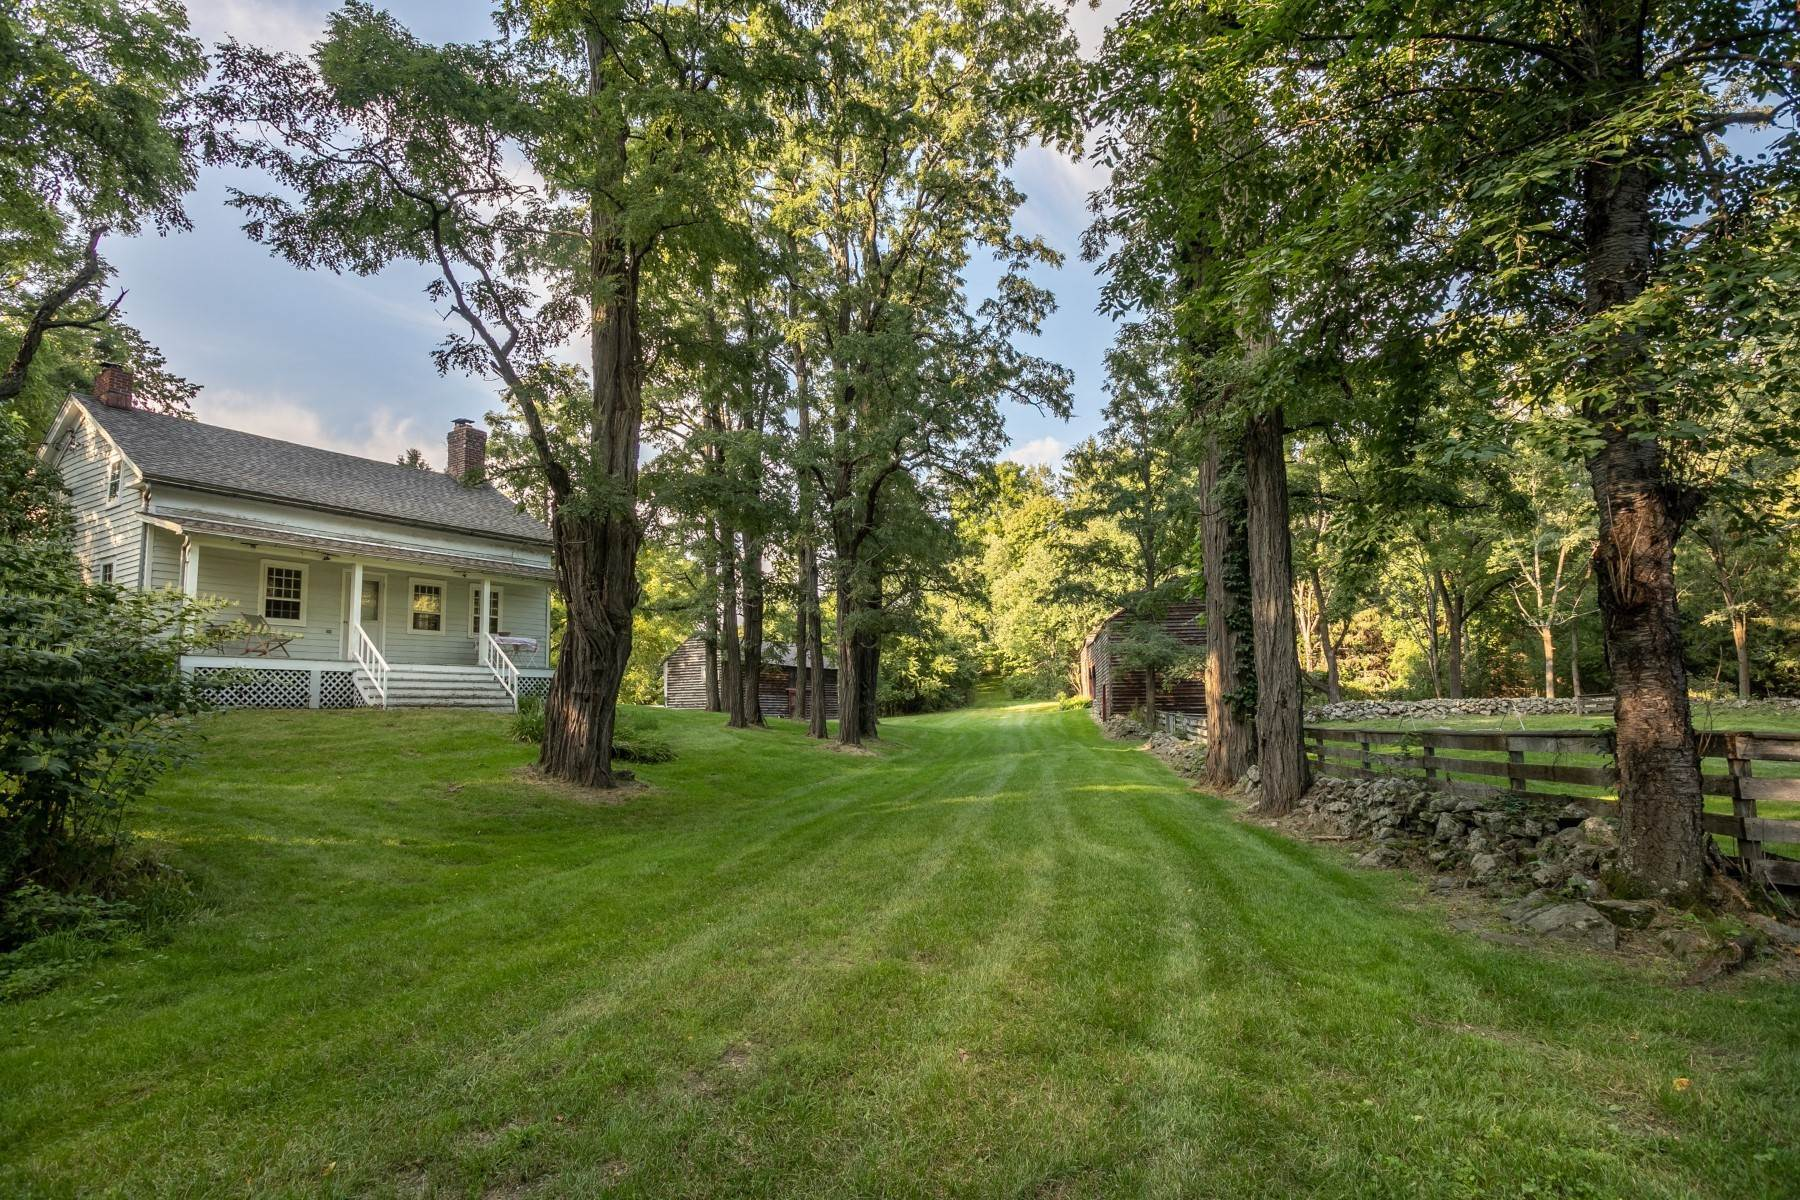 Single Family Homes for Sale at Quaker Farmstead 1180 County Route 13 Old Chatham, New York 12136 United States